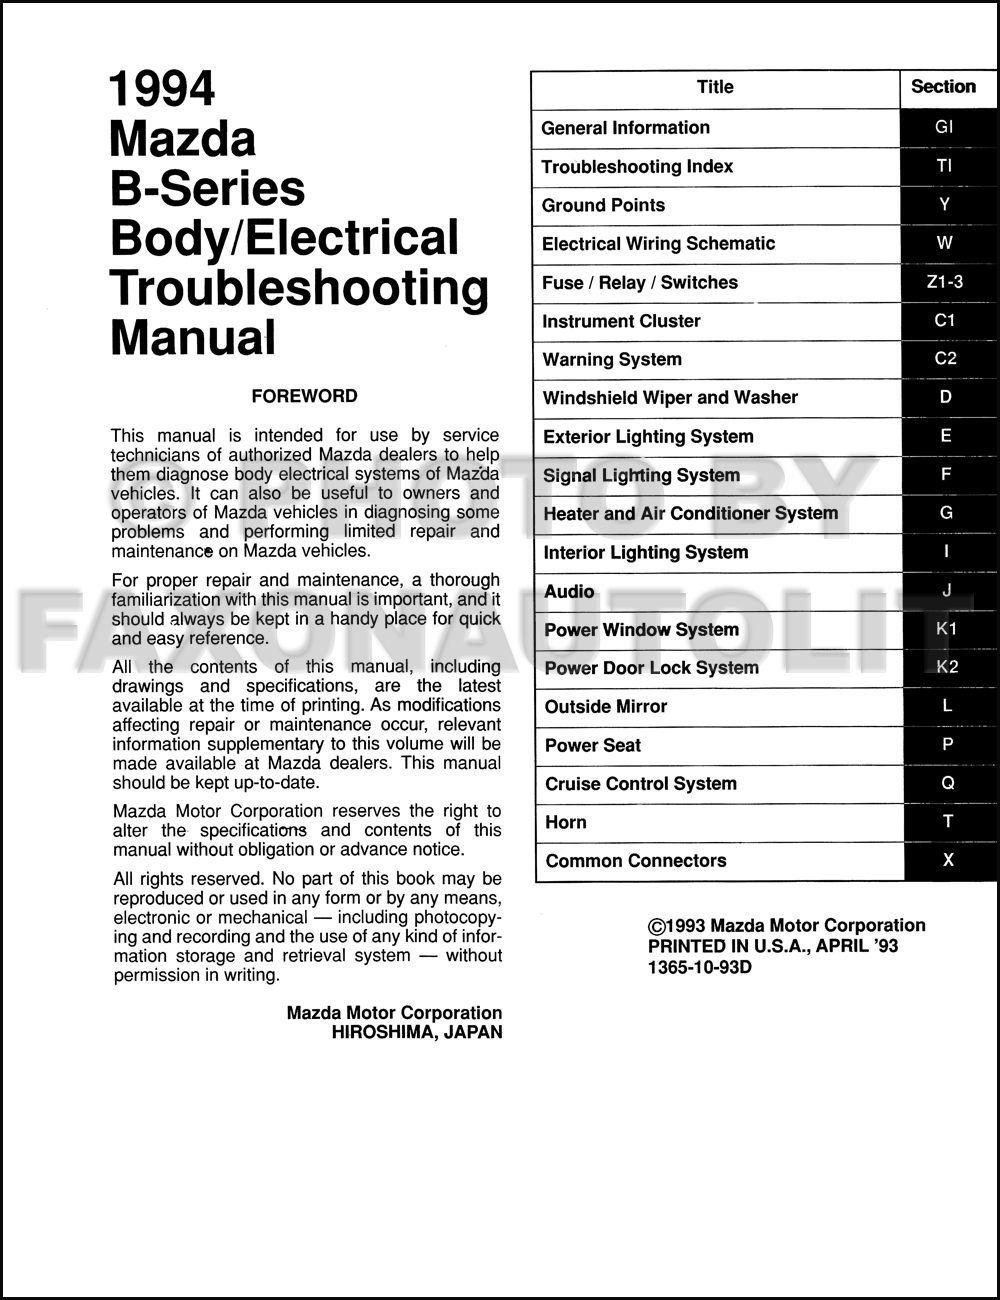 1996 Mazda Pickup Truck Body Electrical Troubleshooting Manual Original B2300 Fuse Diagram Click On Thumbnail To Zoom